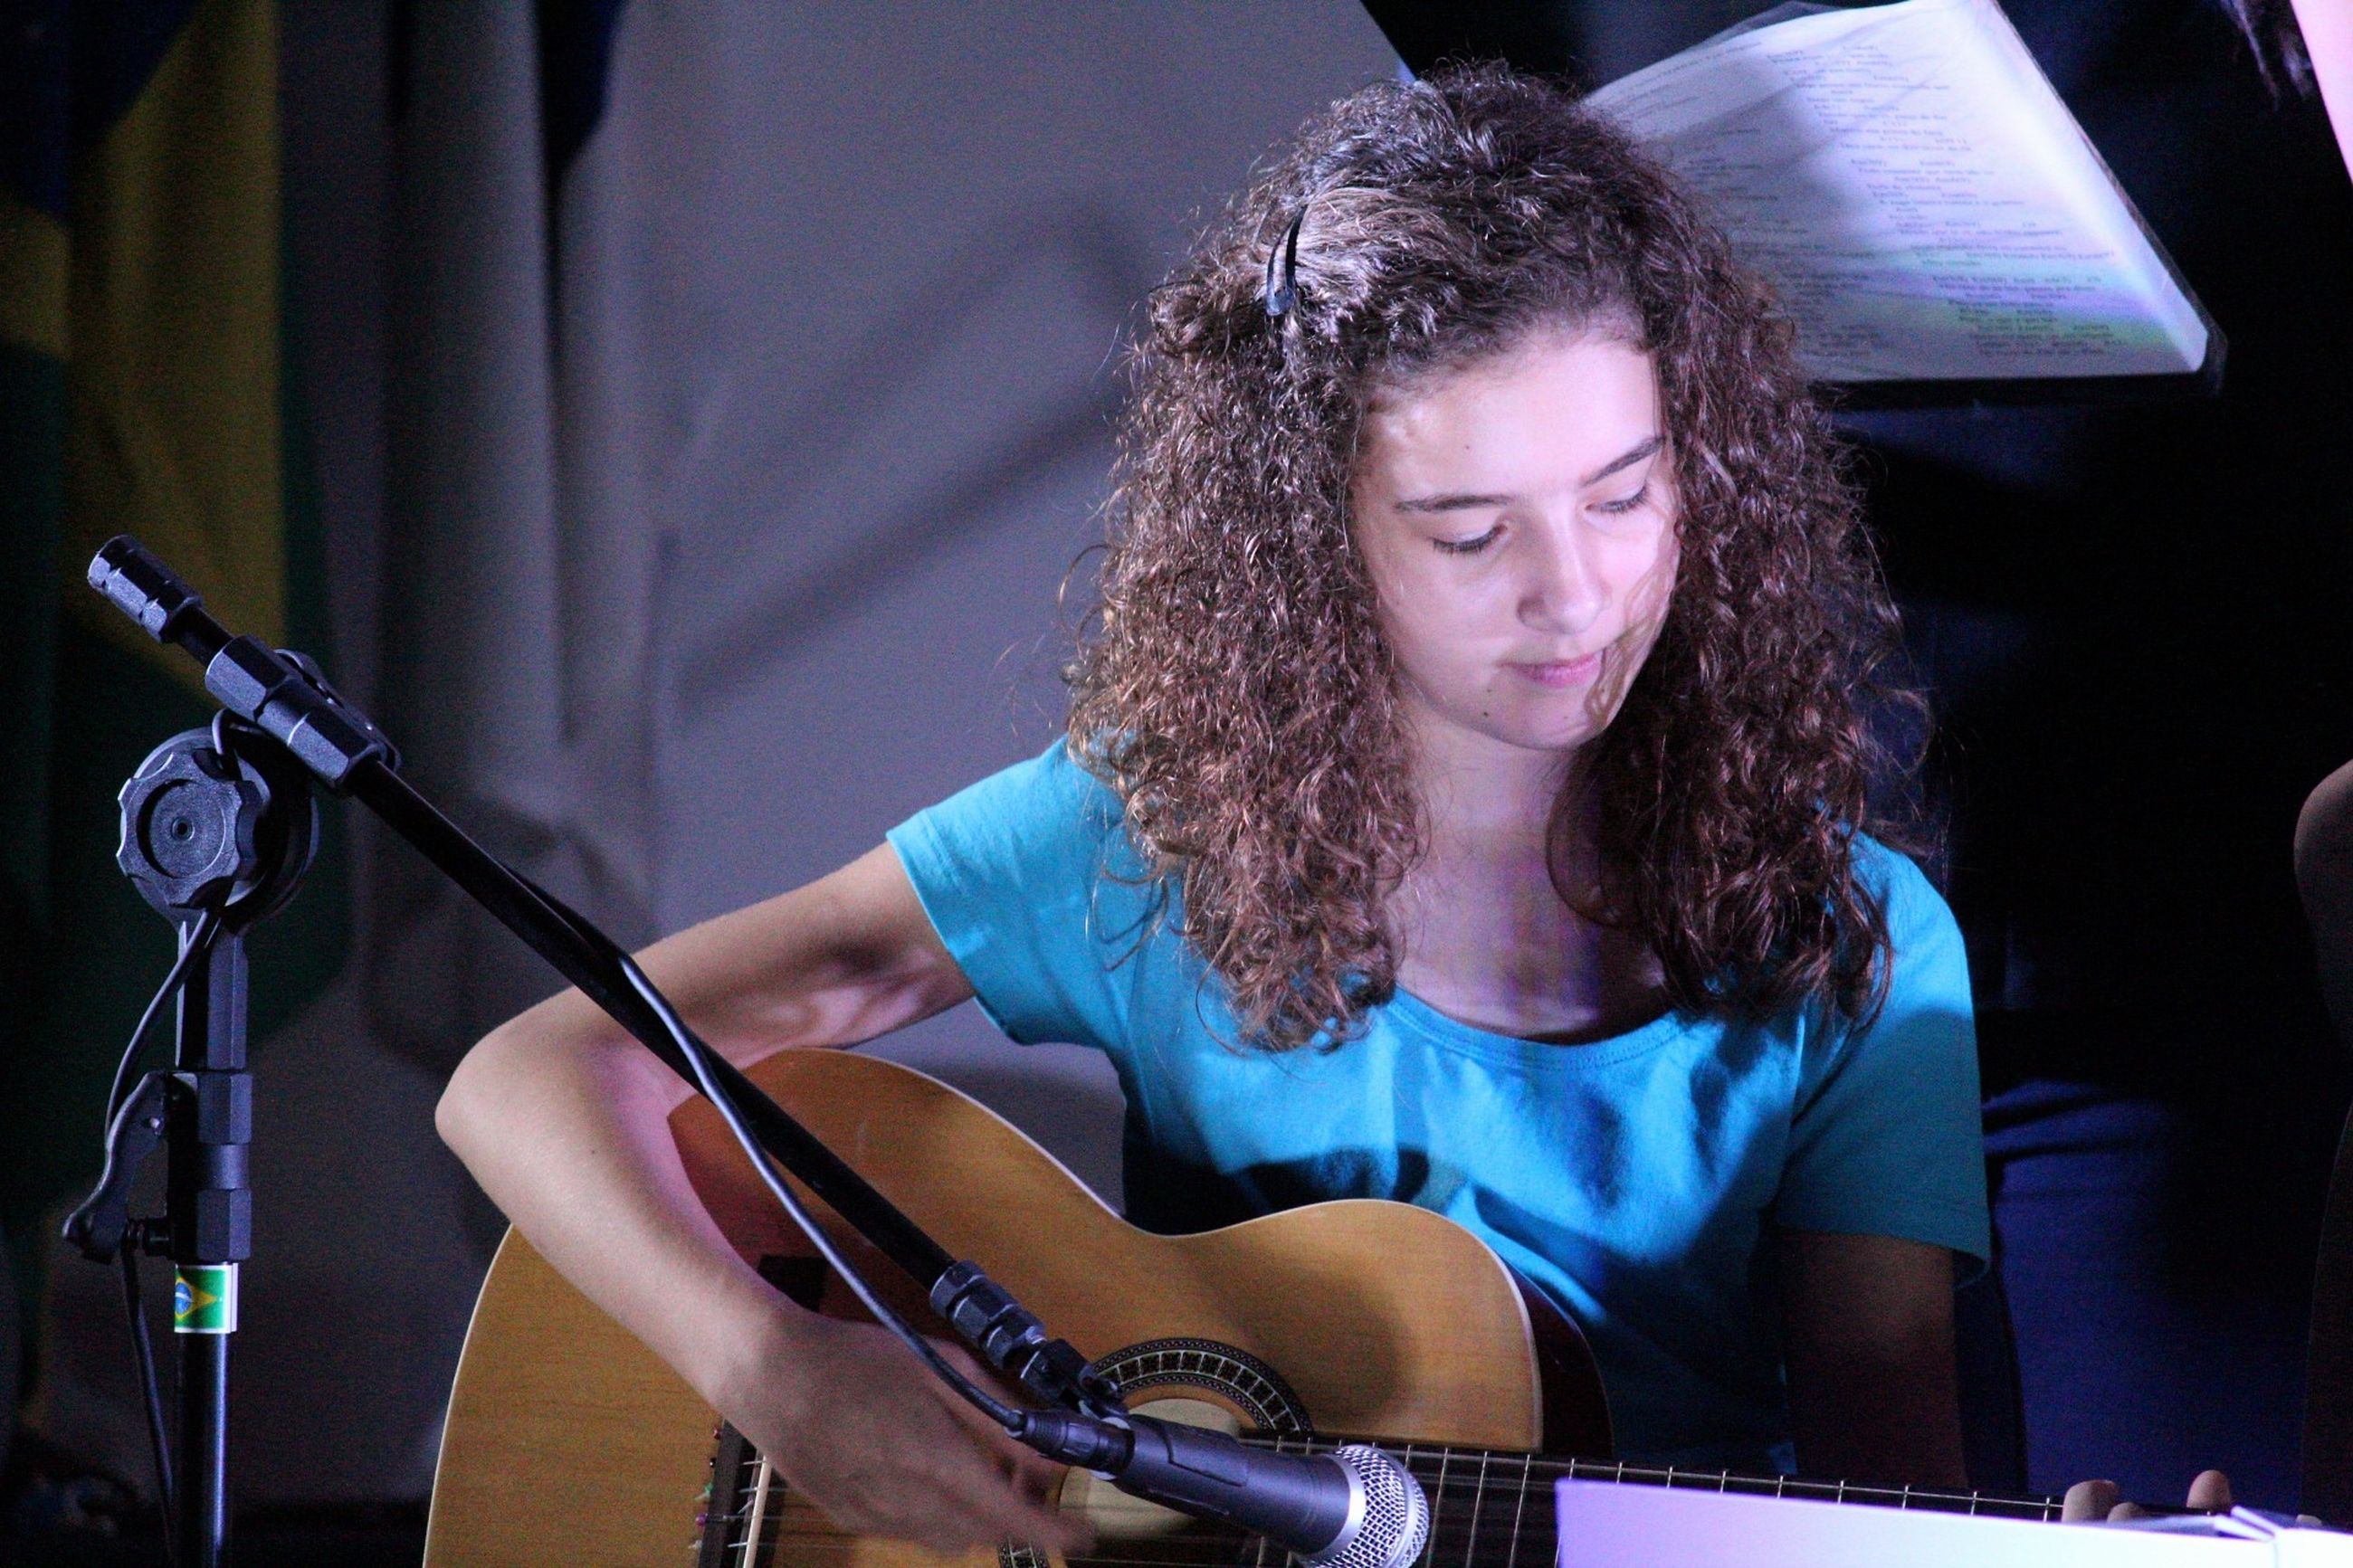 music, musical instrument, string instrument, arts culture and entertainment, musician, performance, artist, musical equipment, real people, one person, playing, front view, guitar, indoors, young adult, hairstyle, young women, input device, microphone, skill, hair, plucking an instrument, stage